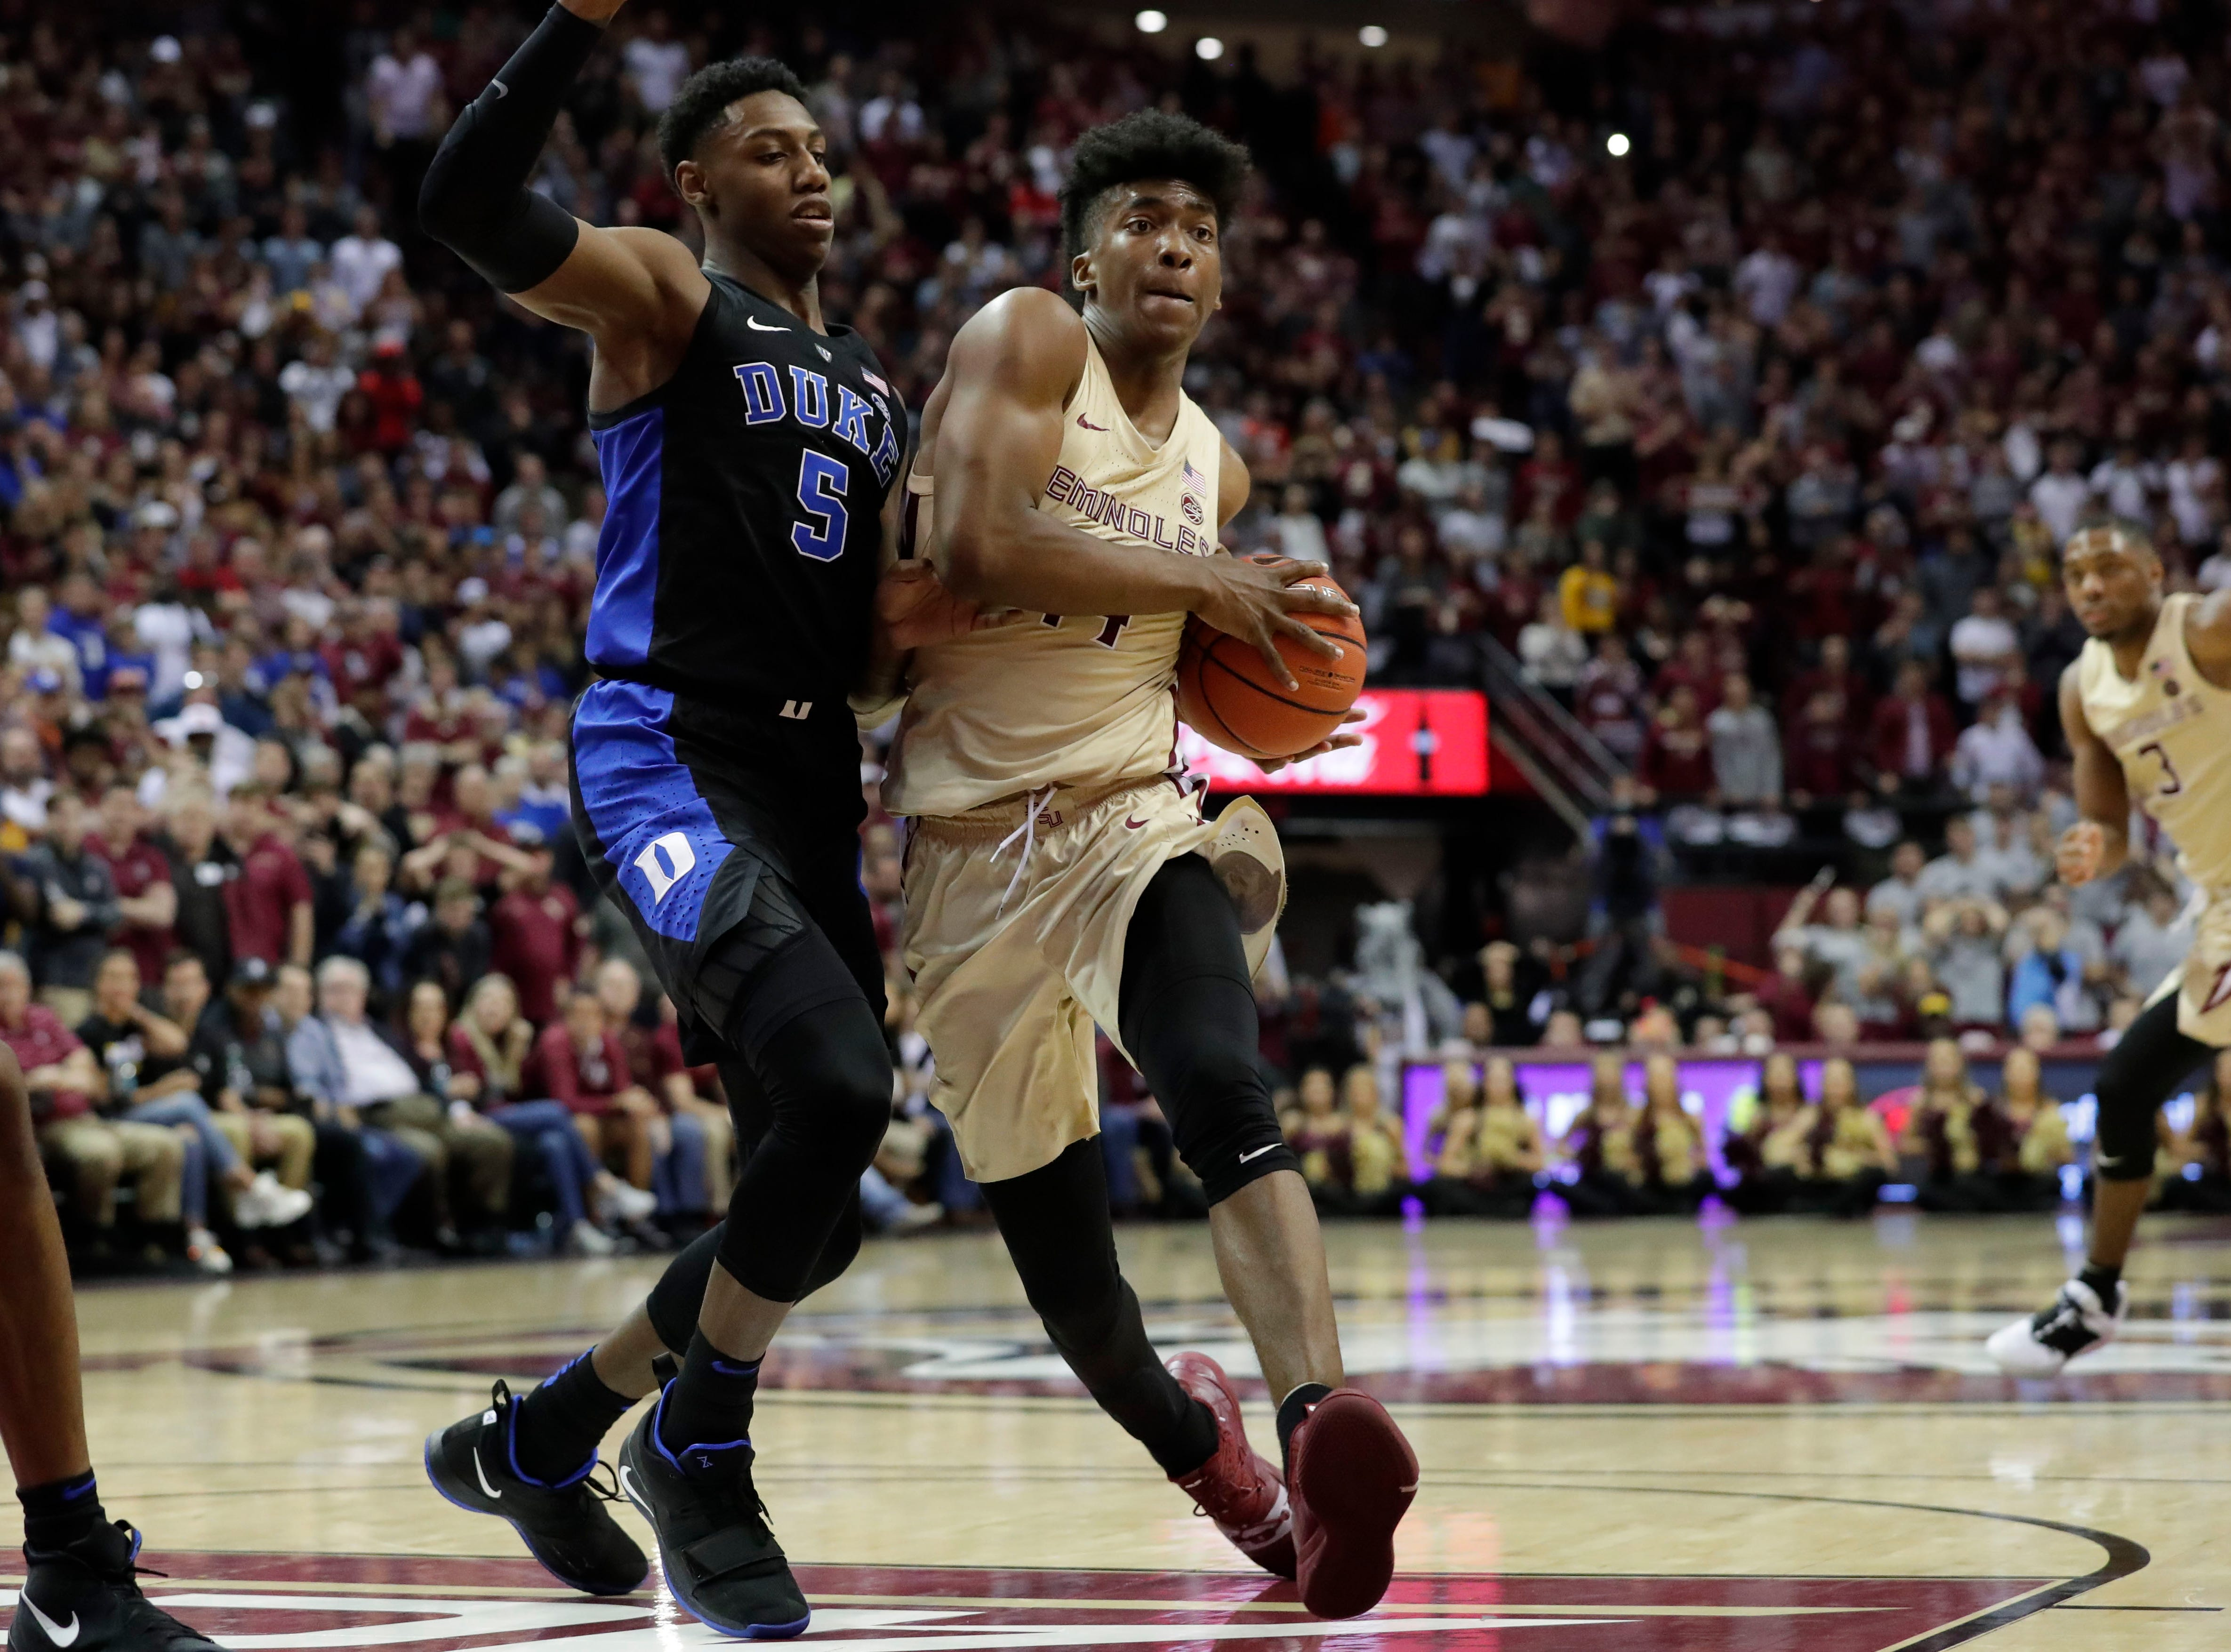 Florida State Seminoles guard Terance Mann (14) drives the ball to the hoop right past Duke Blue Devils forward RJ Barrett (5). Ranked 13 in the ACC, the Florida State Seminoles host the number 1 team, the Duke Blue Devils, at the Tucker Civic Center, Saturday, Jan. 12, 2019.